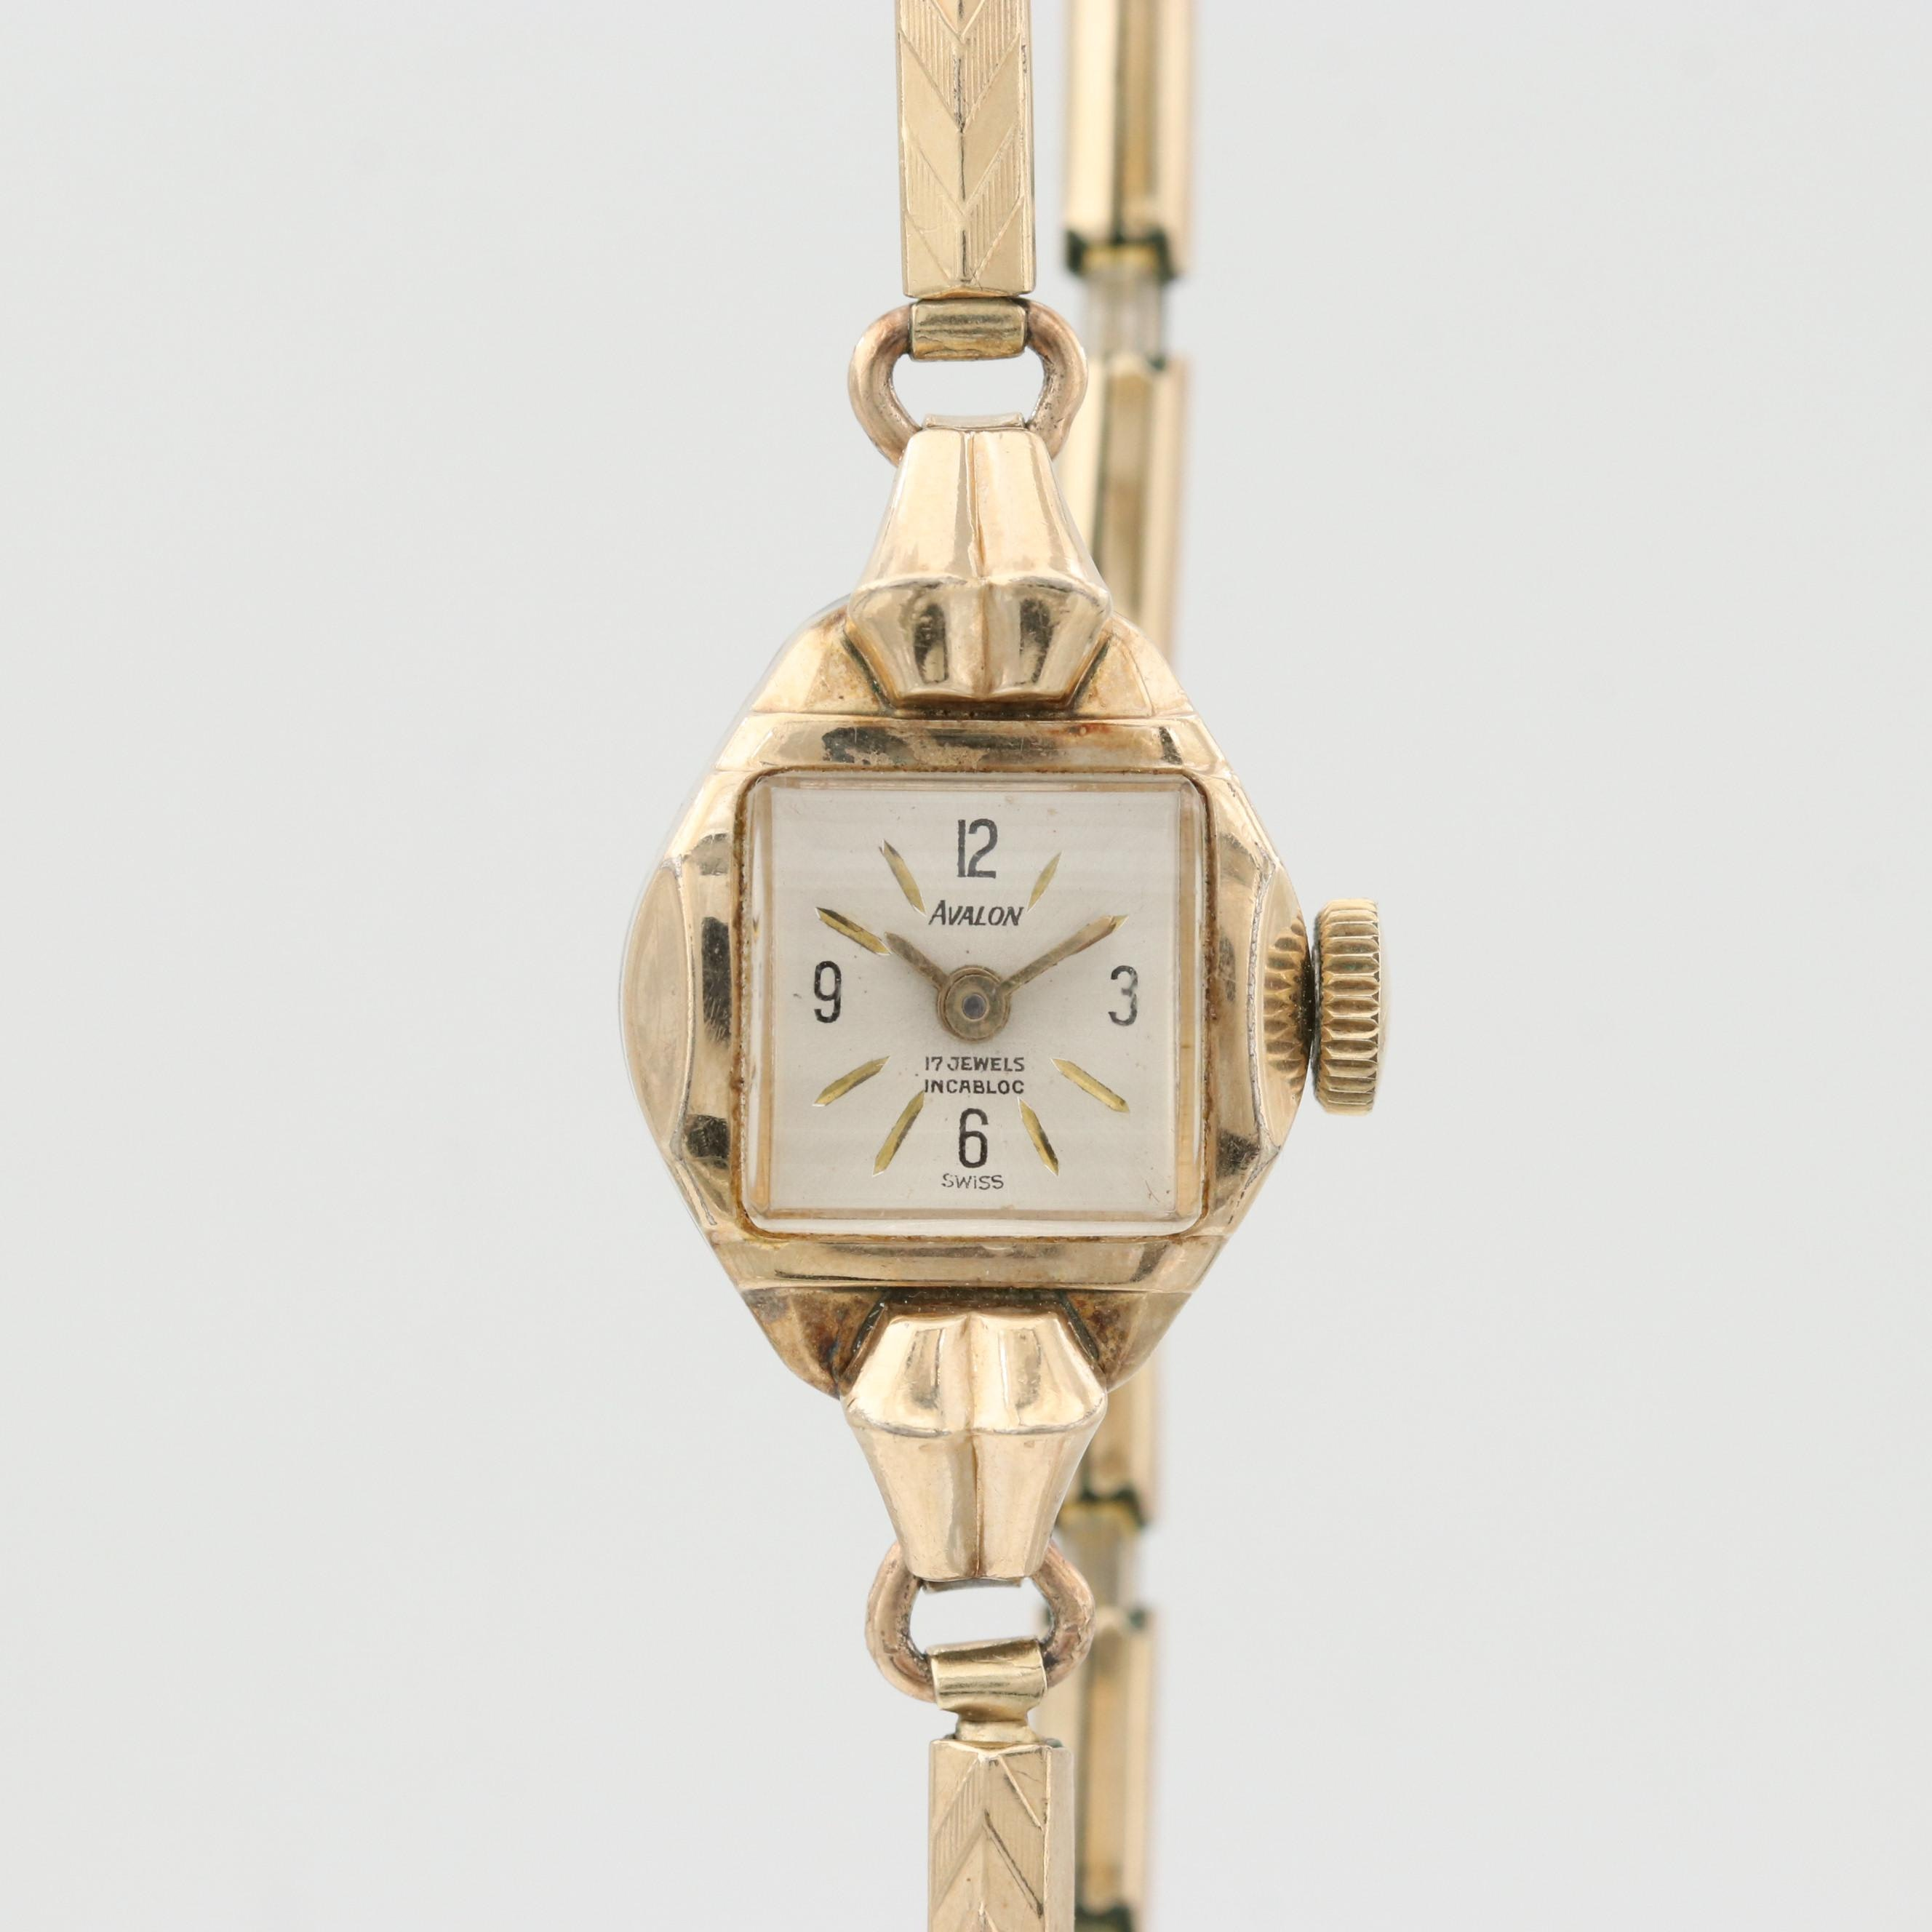 Vintage Avalon Gold Tone Stem Wind Wristwatch